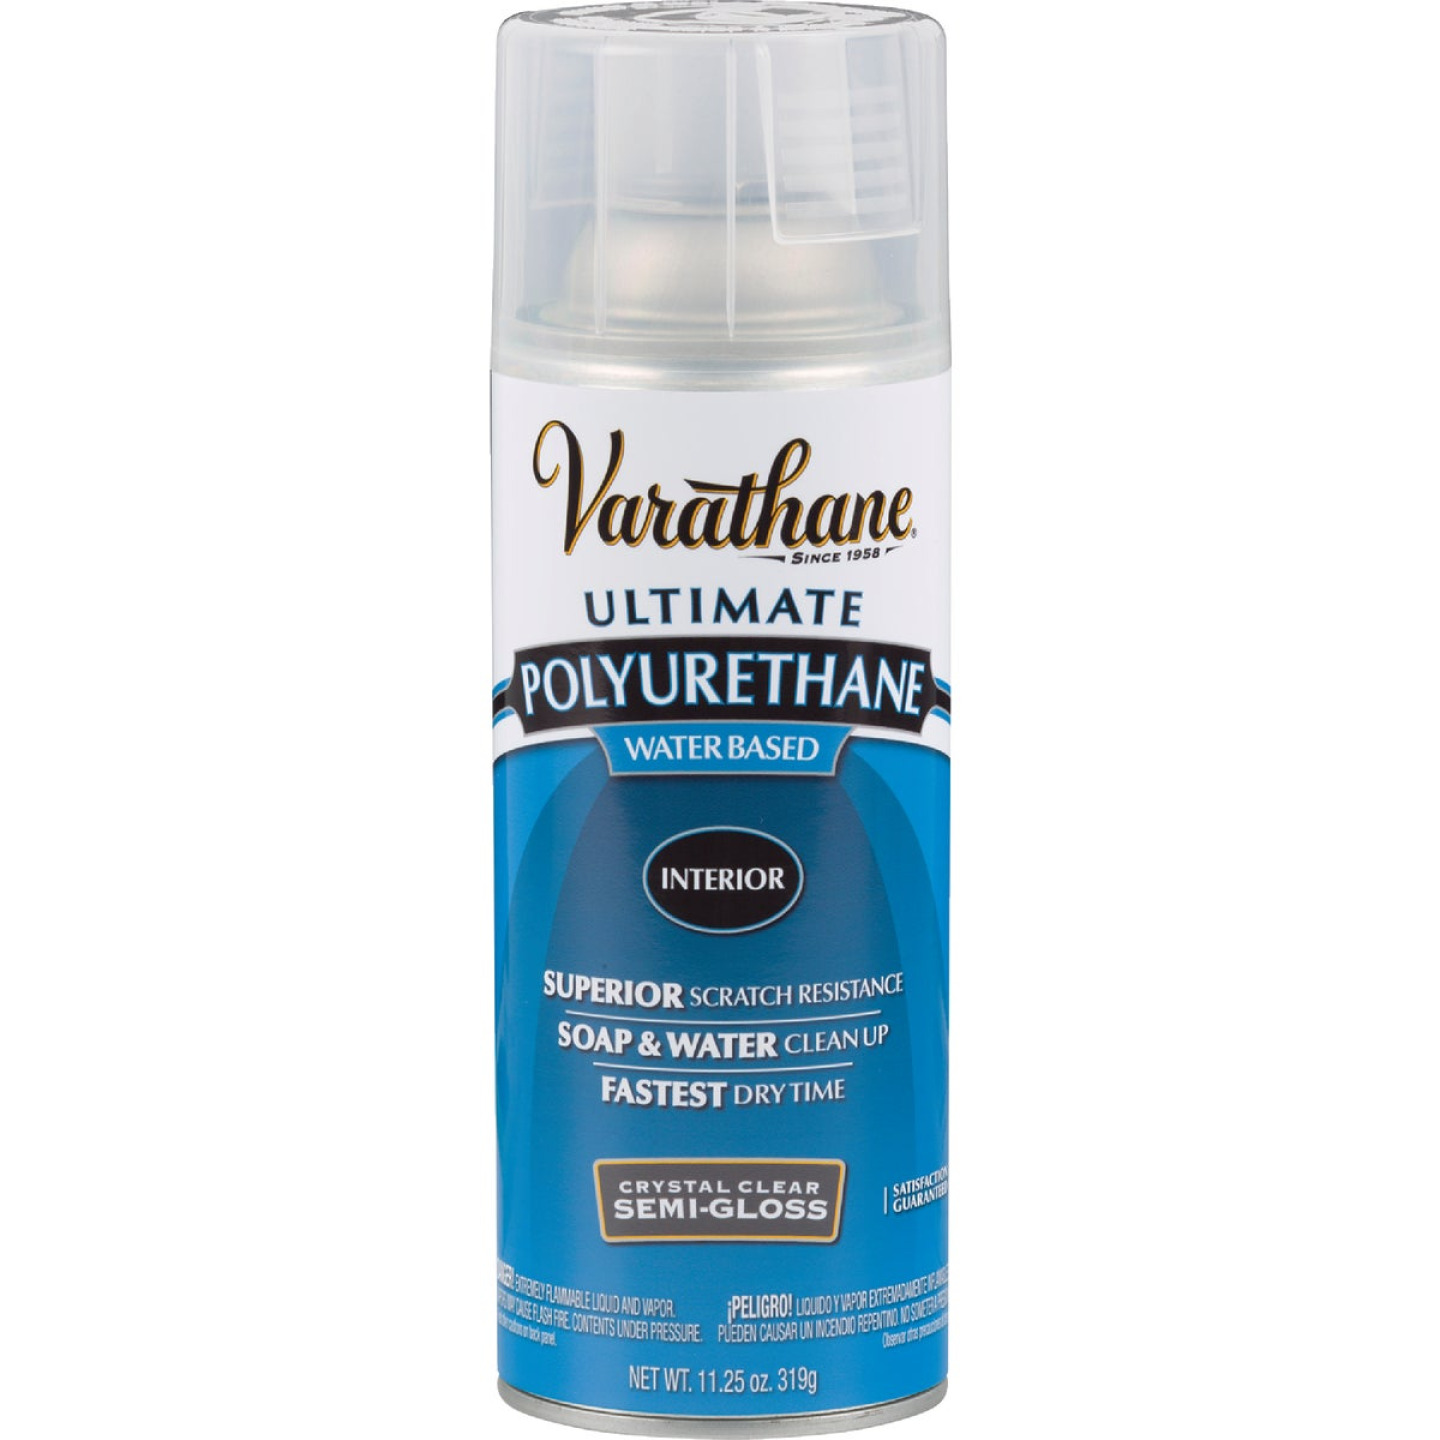 Varathane Semi-Gloss Clear Interior Water-Based Spray Polyurethane, 11.25 Oz. Image 1